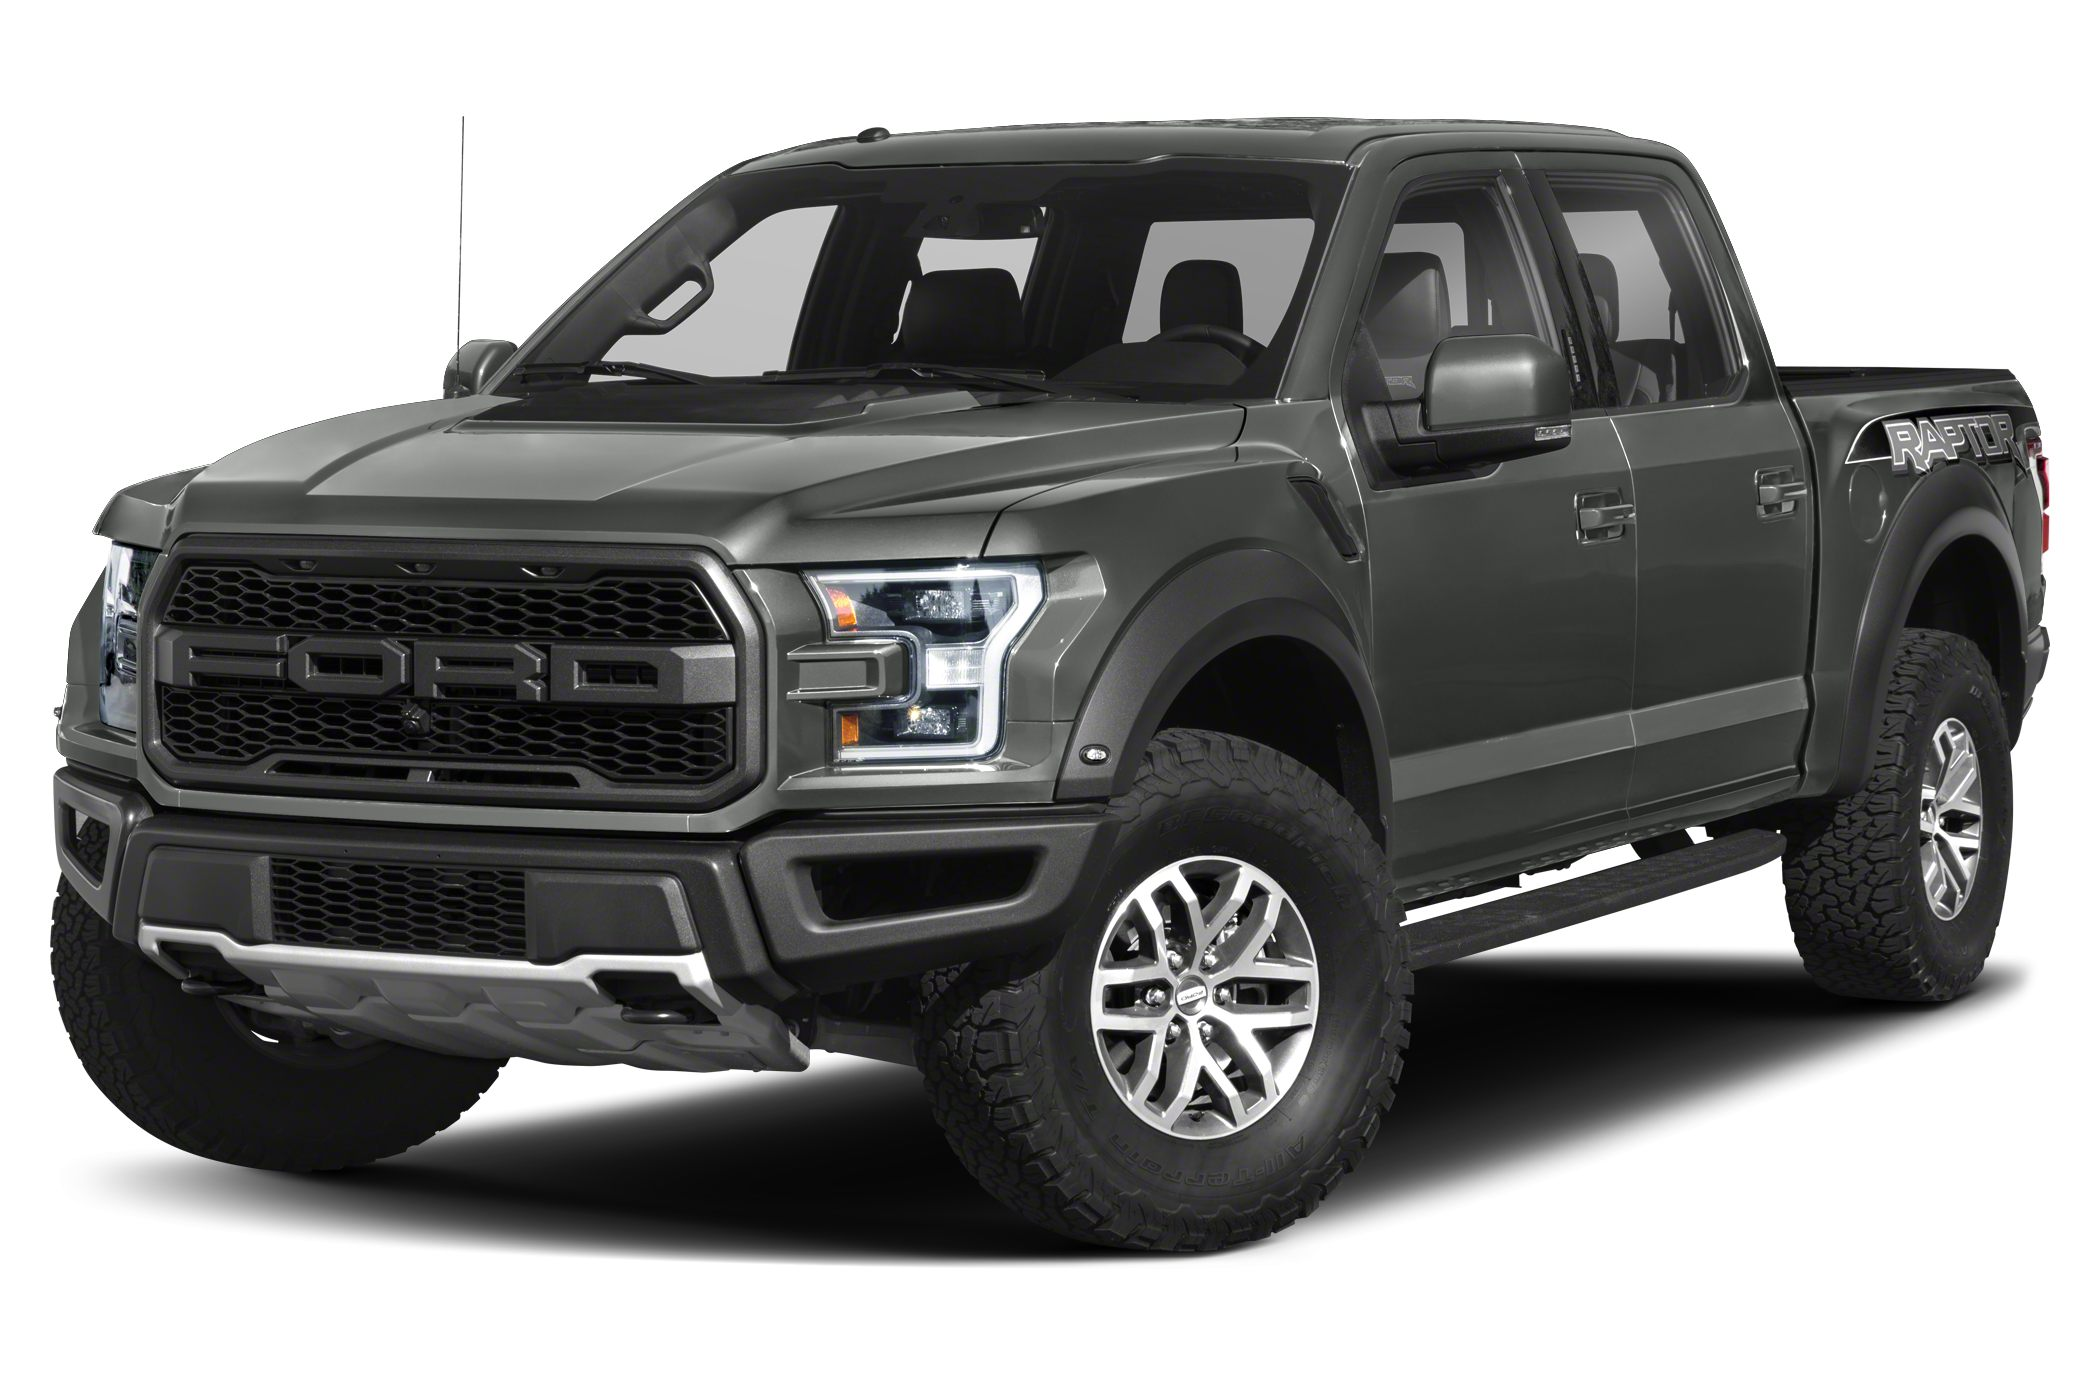 2017 Ford F-150 Raptor We have some great specials here online Dont forget to mention internet pr